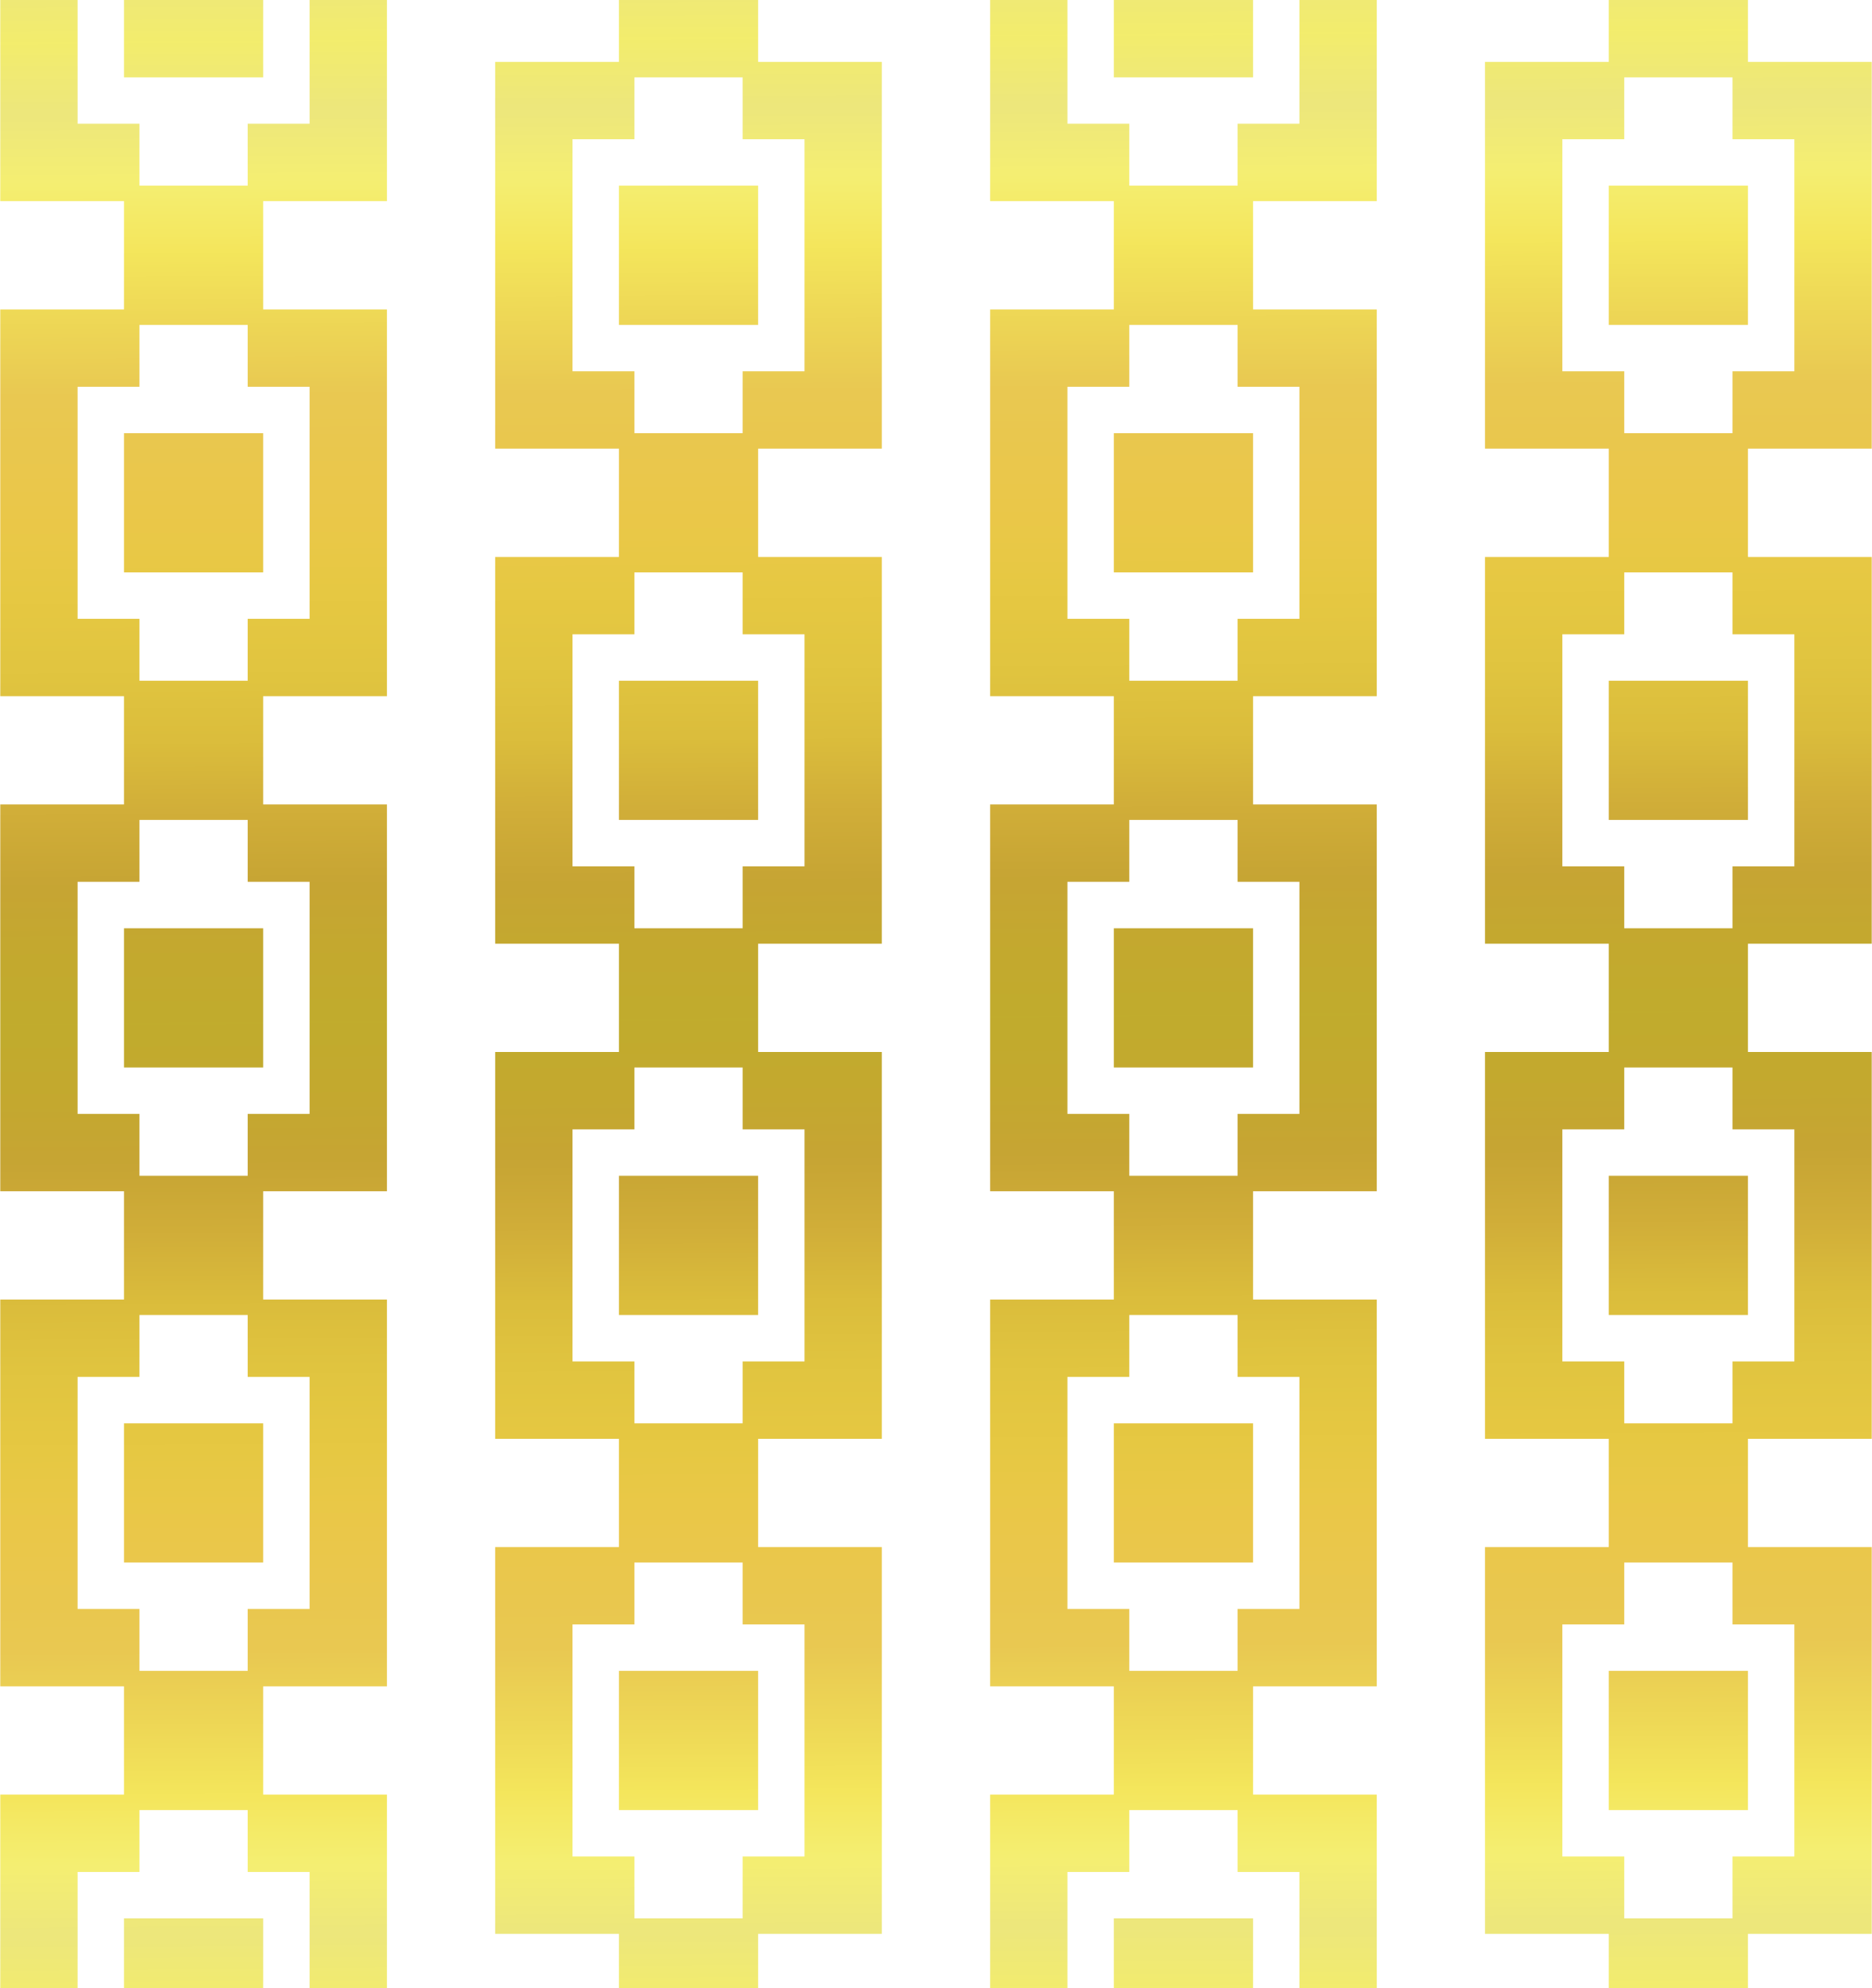 Gold Square Pattern by Arvin61r58